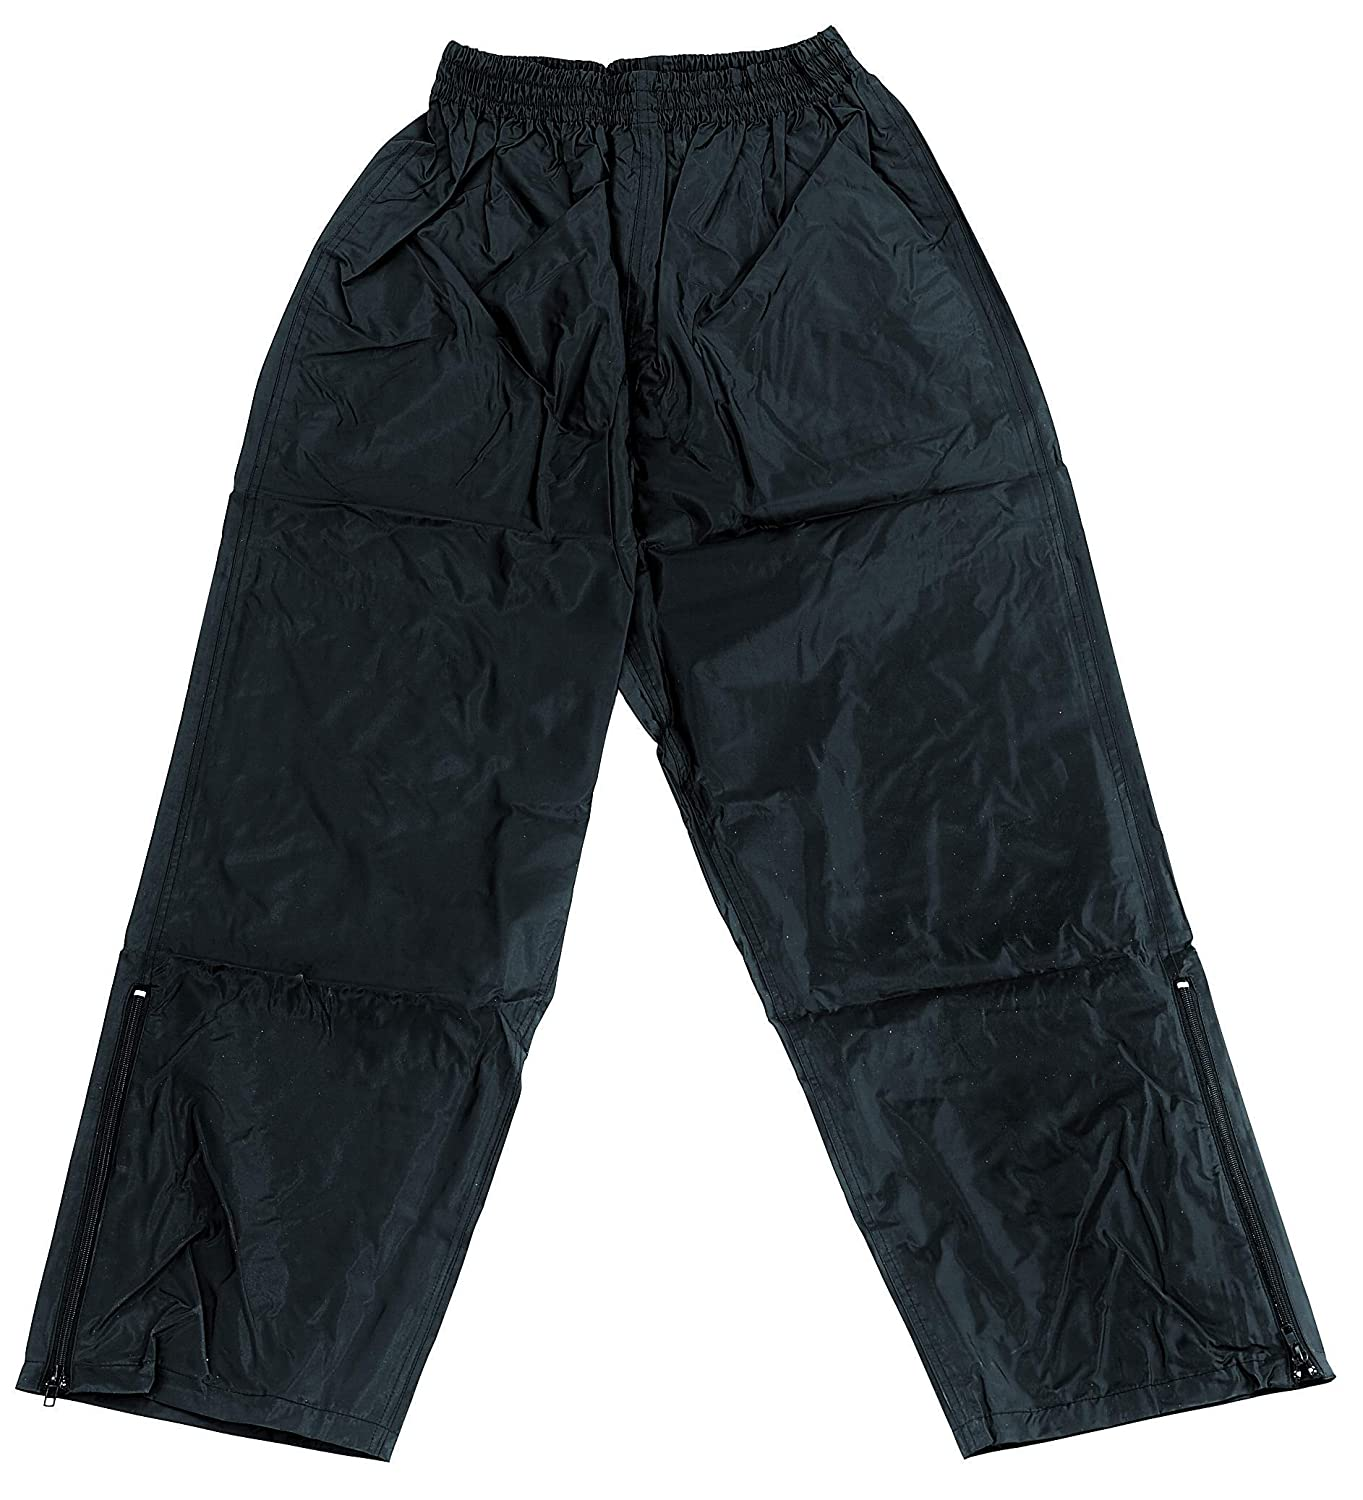 AMAS The Best AM.1050 PANTALONE ANTIACQUA 100/% IMPERMEABILE in NYLON PVC SPALMATO XXL